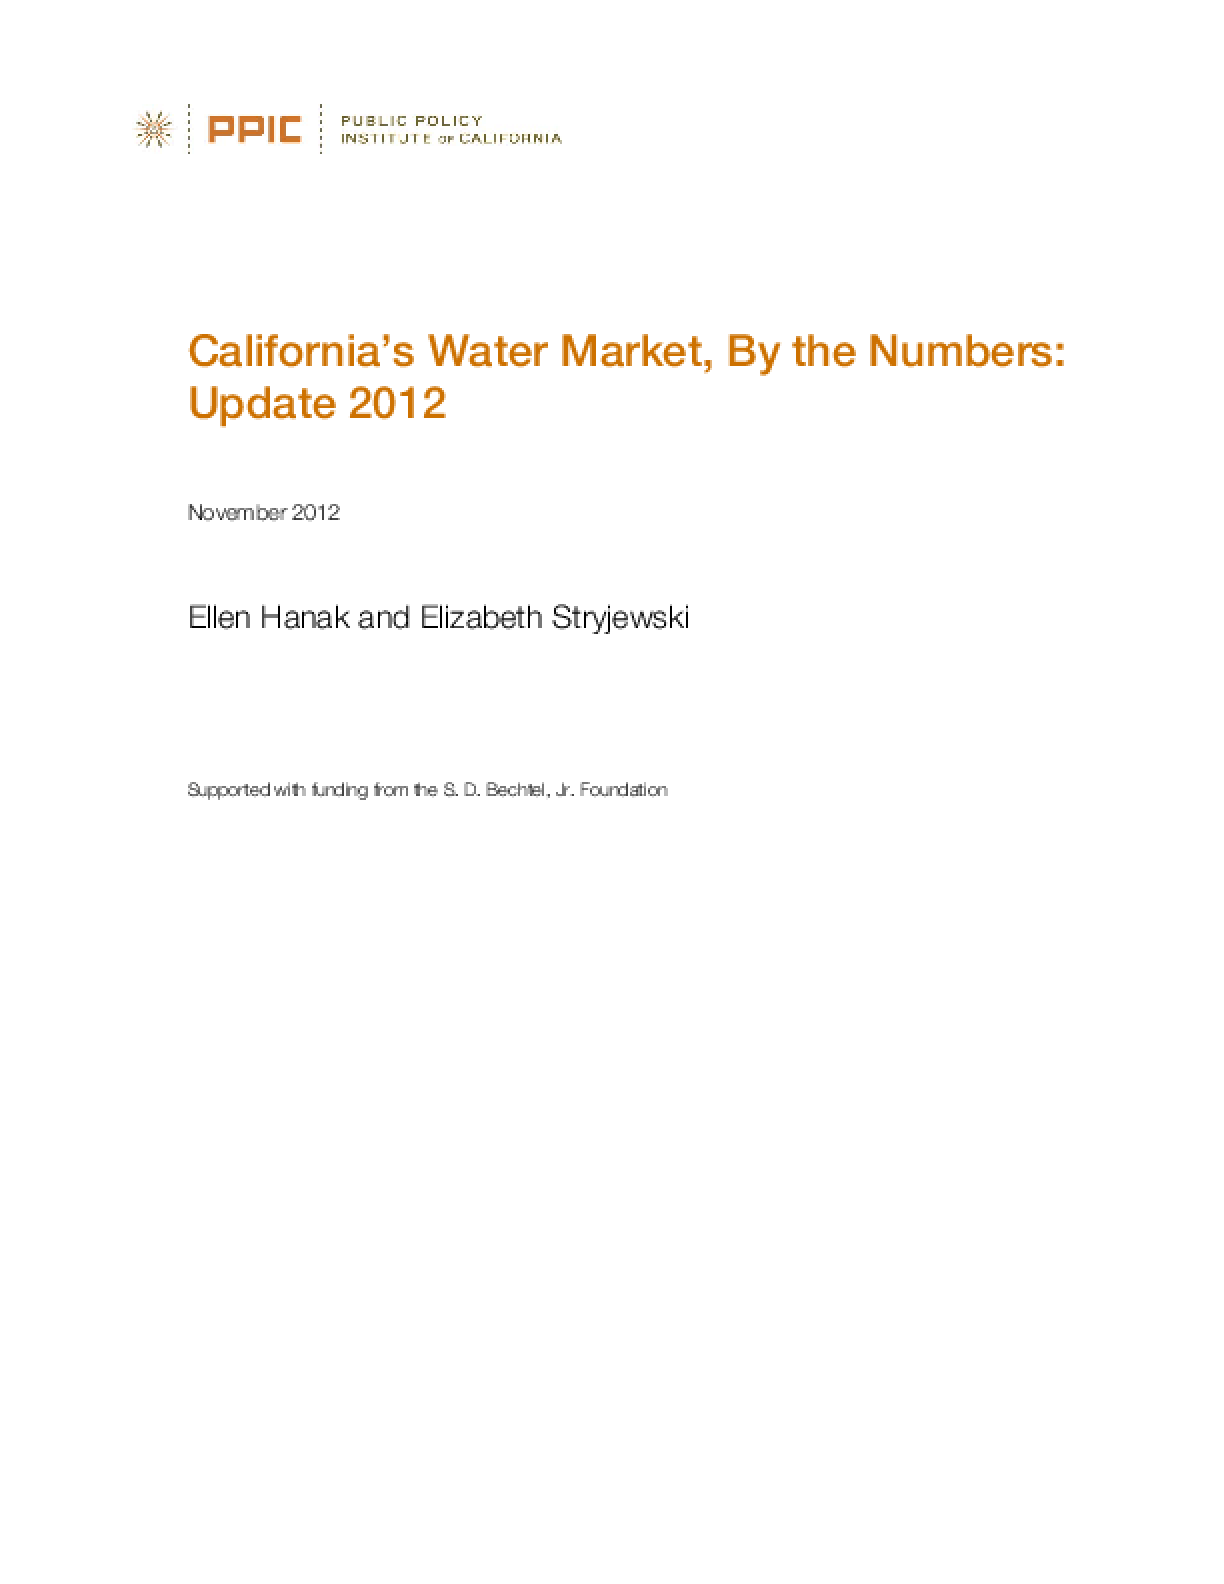 California's Water Market, By the Numbers: Update 2012